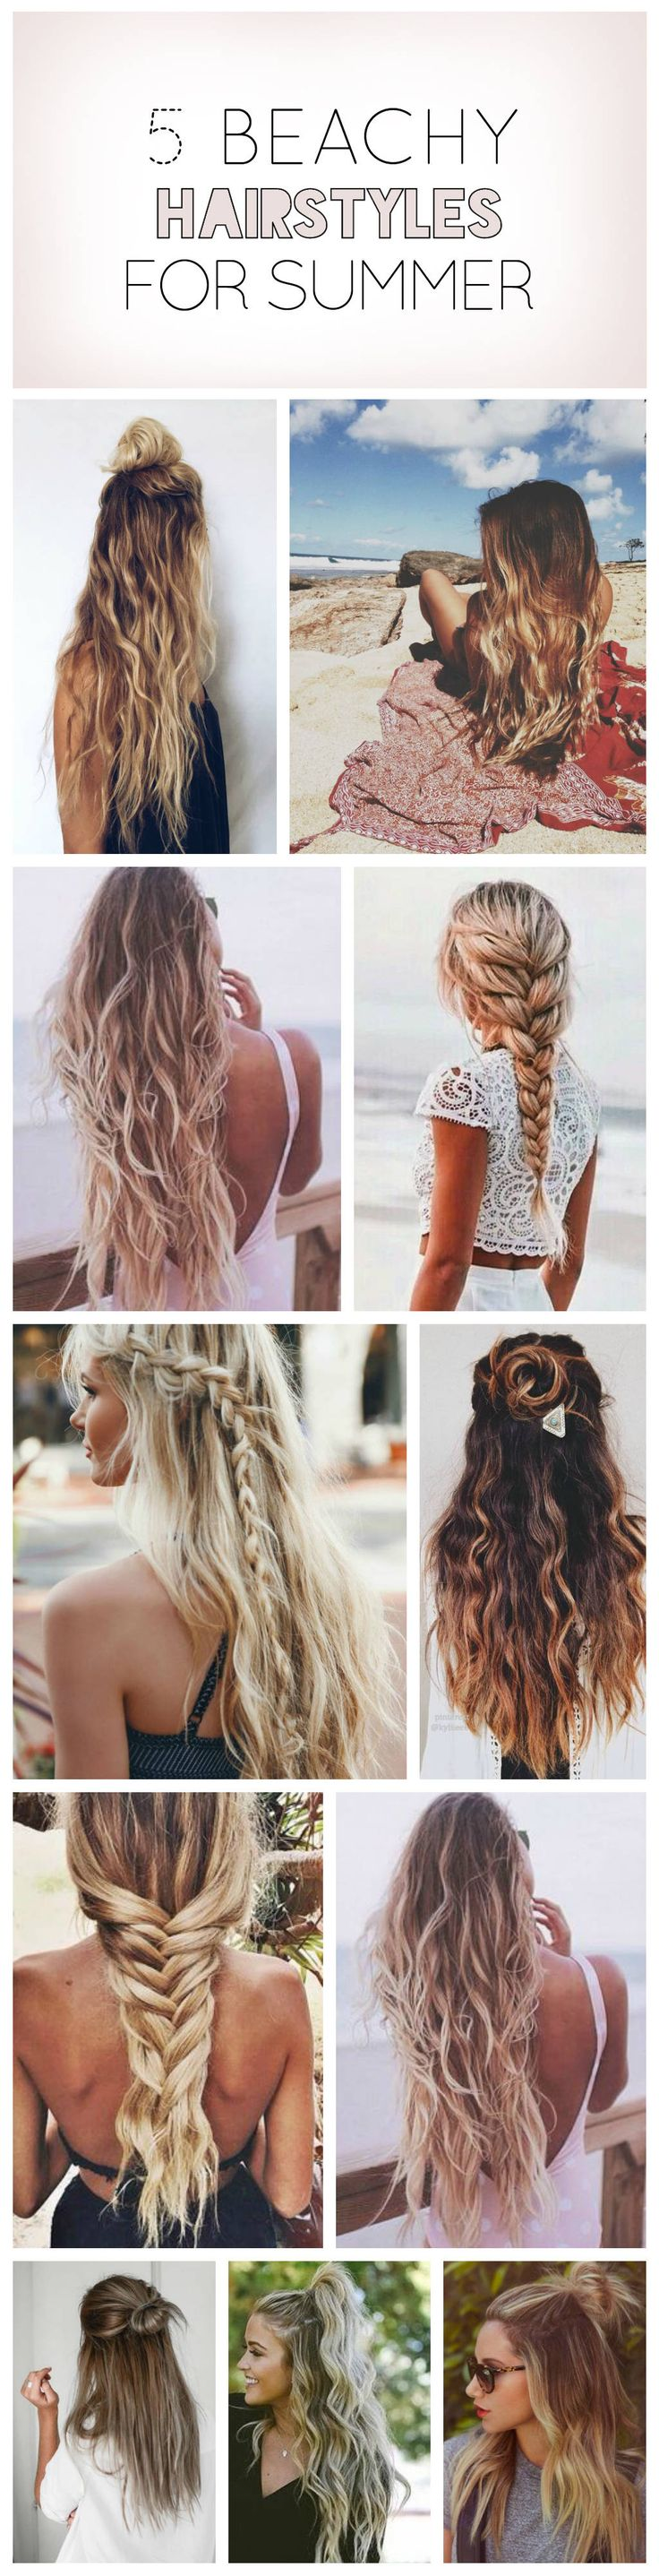 134 best Hair Styles images on Pinterest